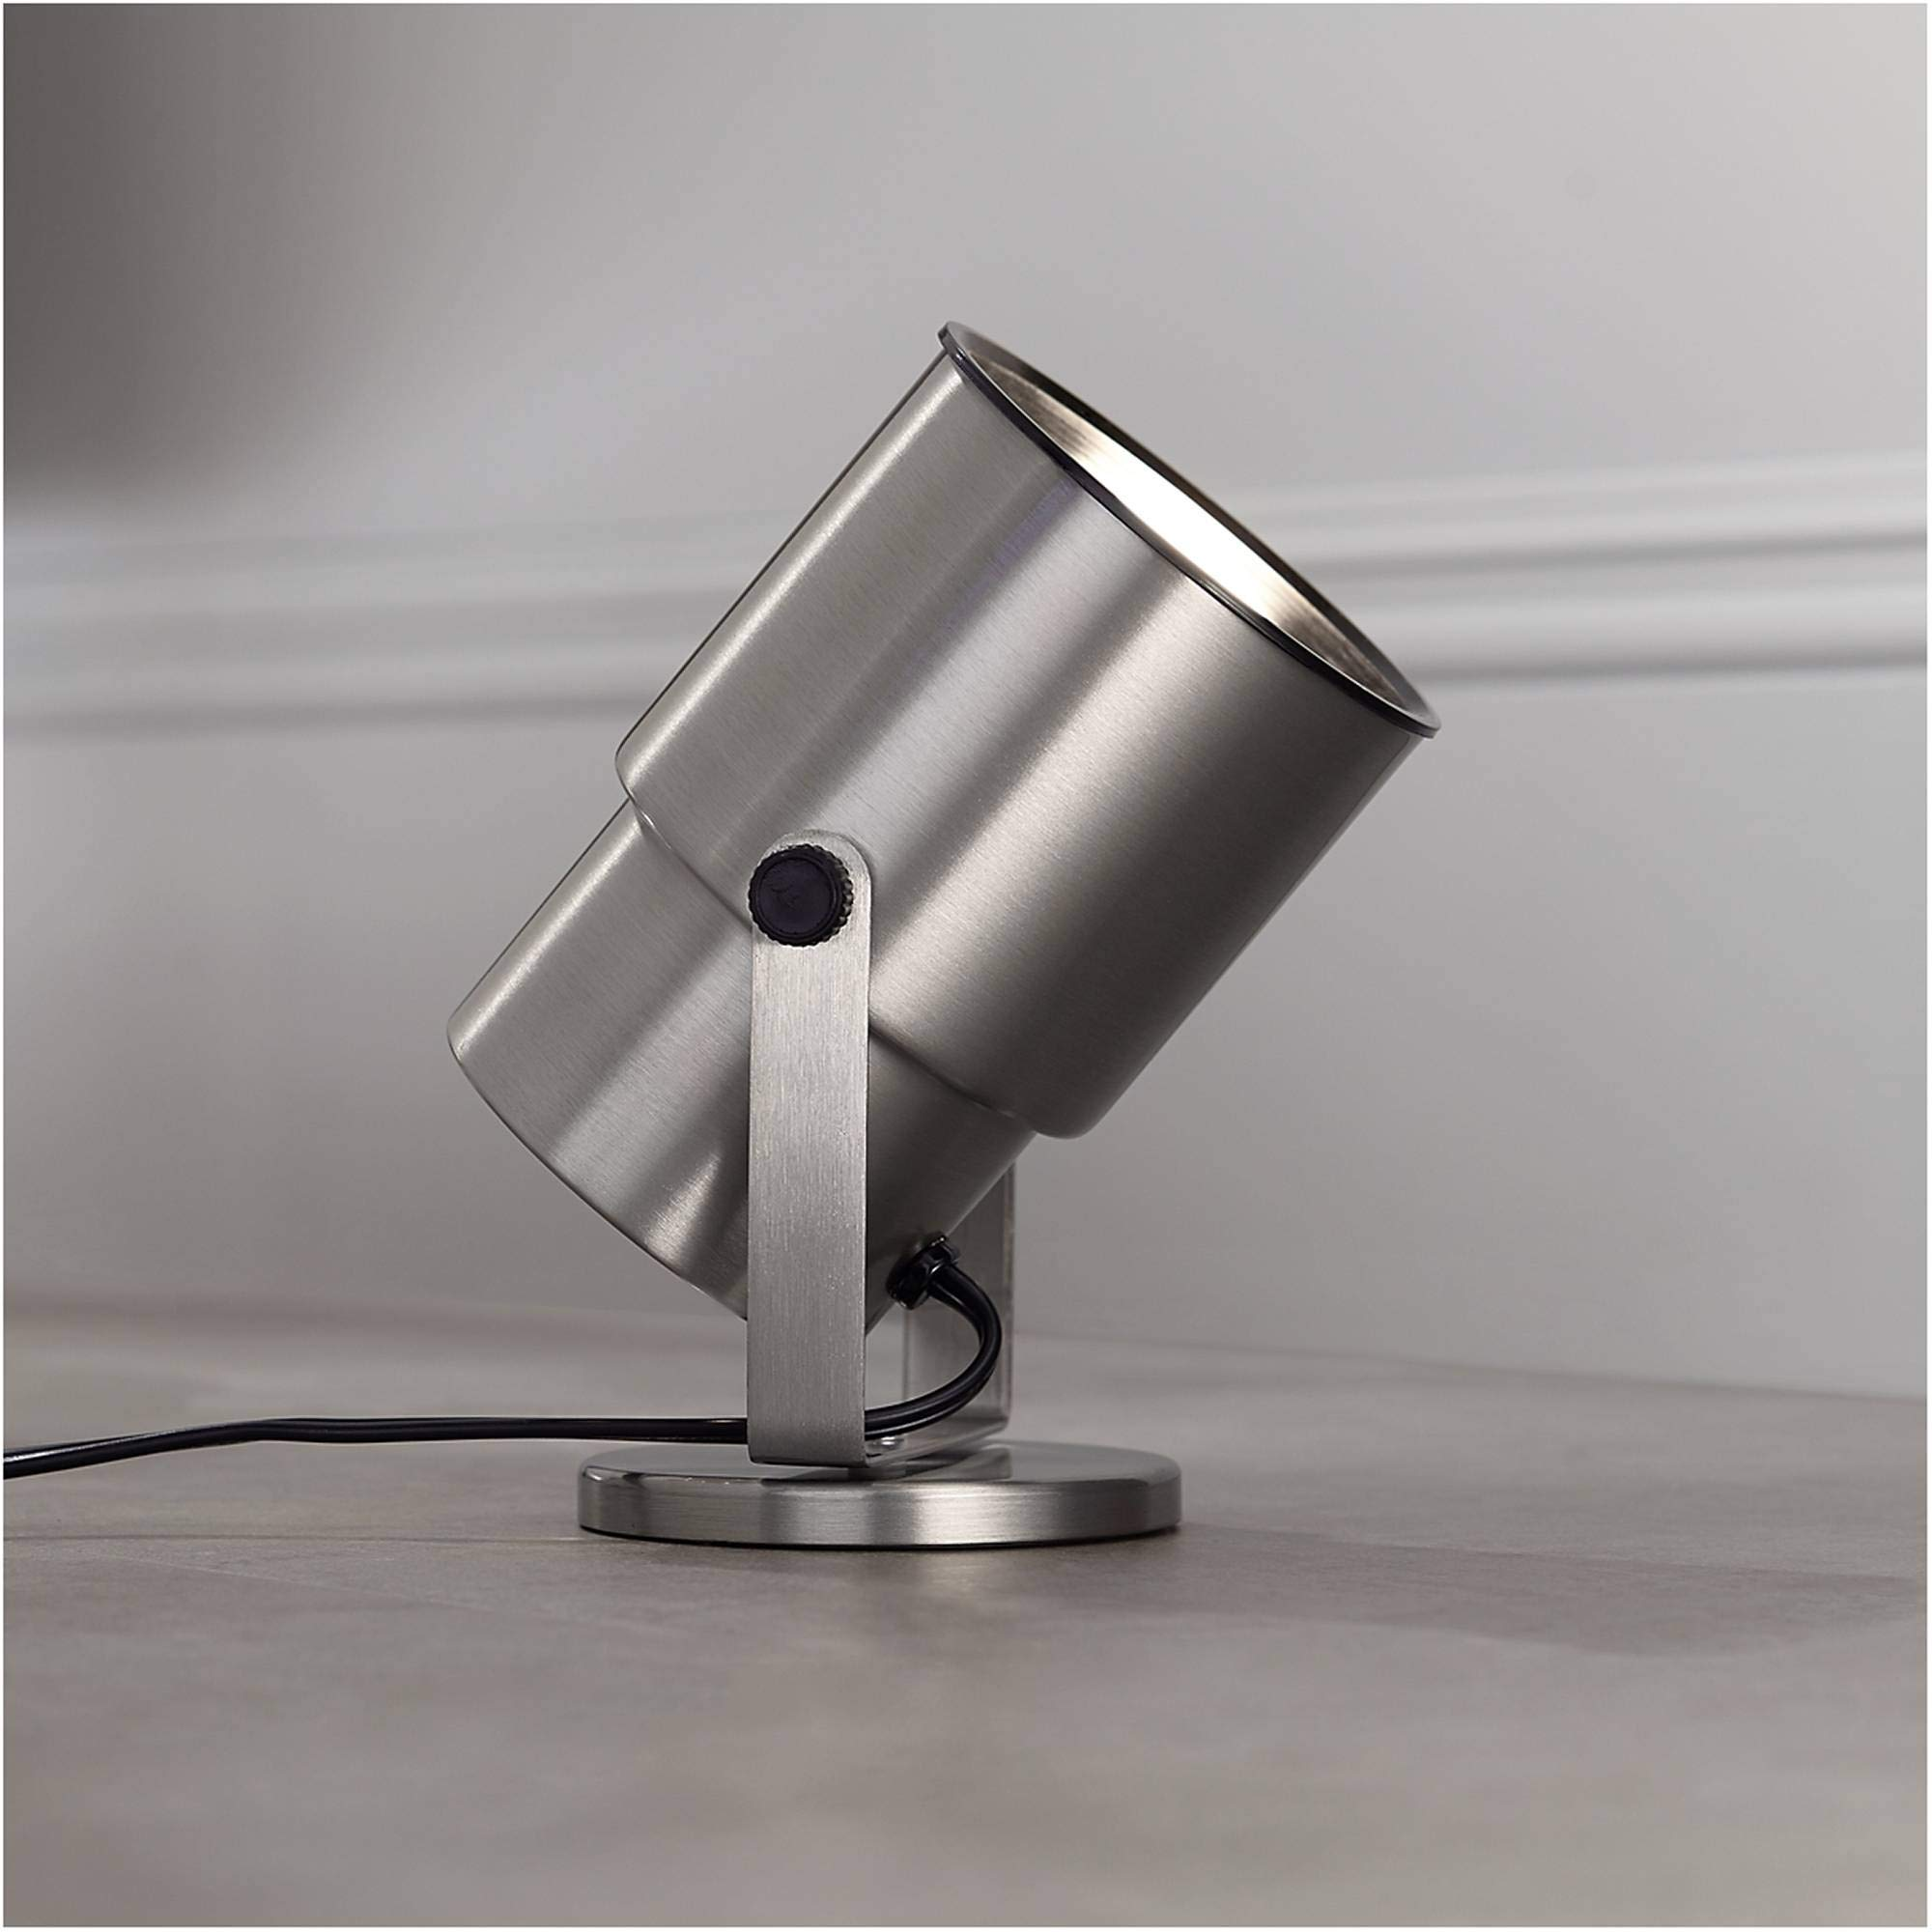 Pro Track Brushed Nickel 8'' High Accent Uplight - Pro Track by Pro Track (Image #5)